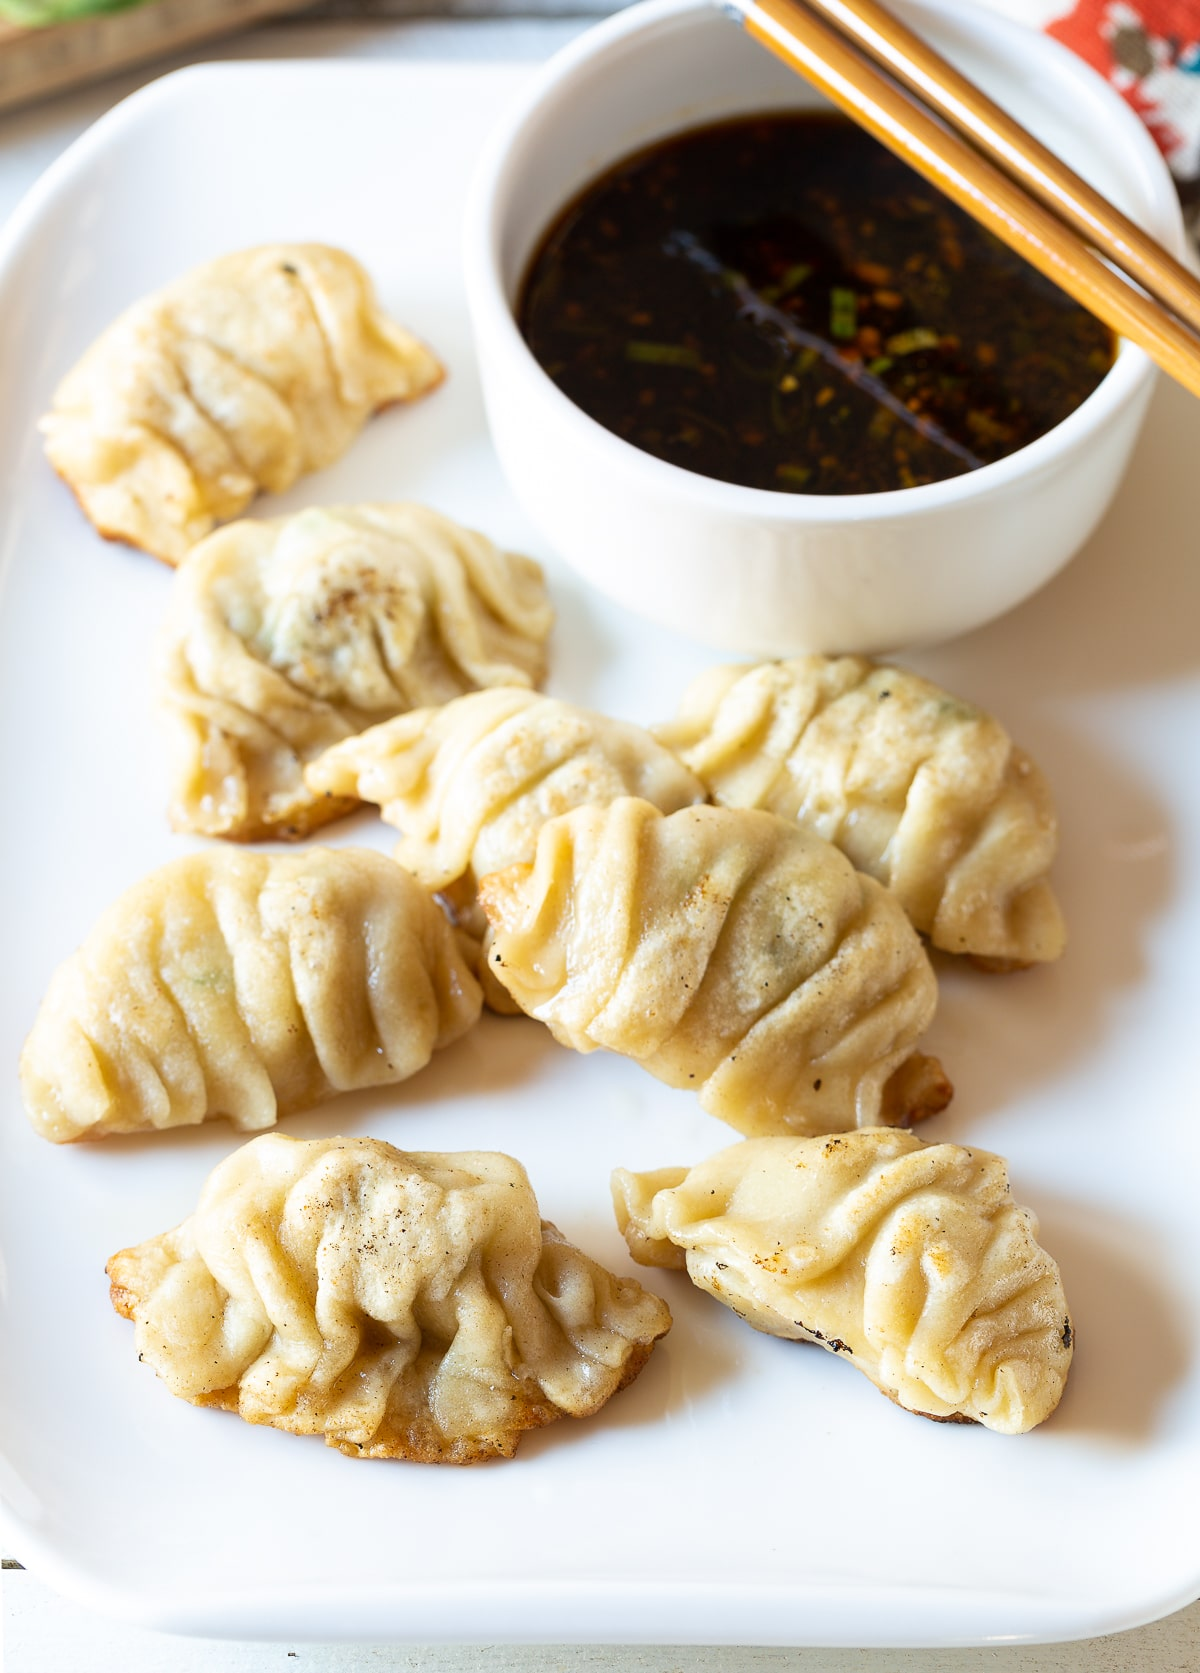 How to Cook Potstickers - Chinese Dumplings #potstickers #dumplings #chinese #appetizer #dimsum